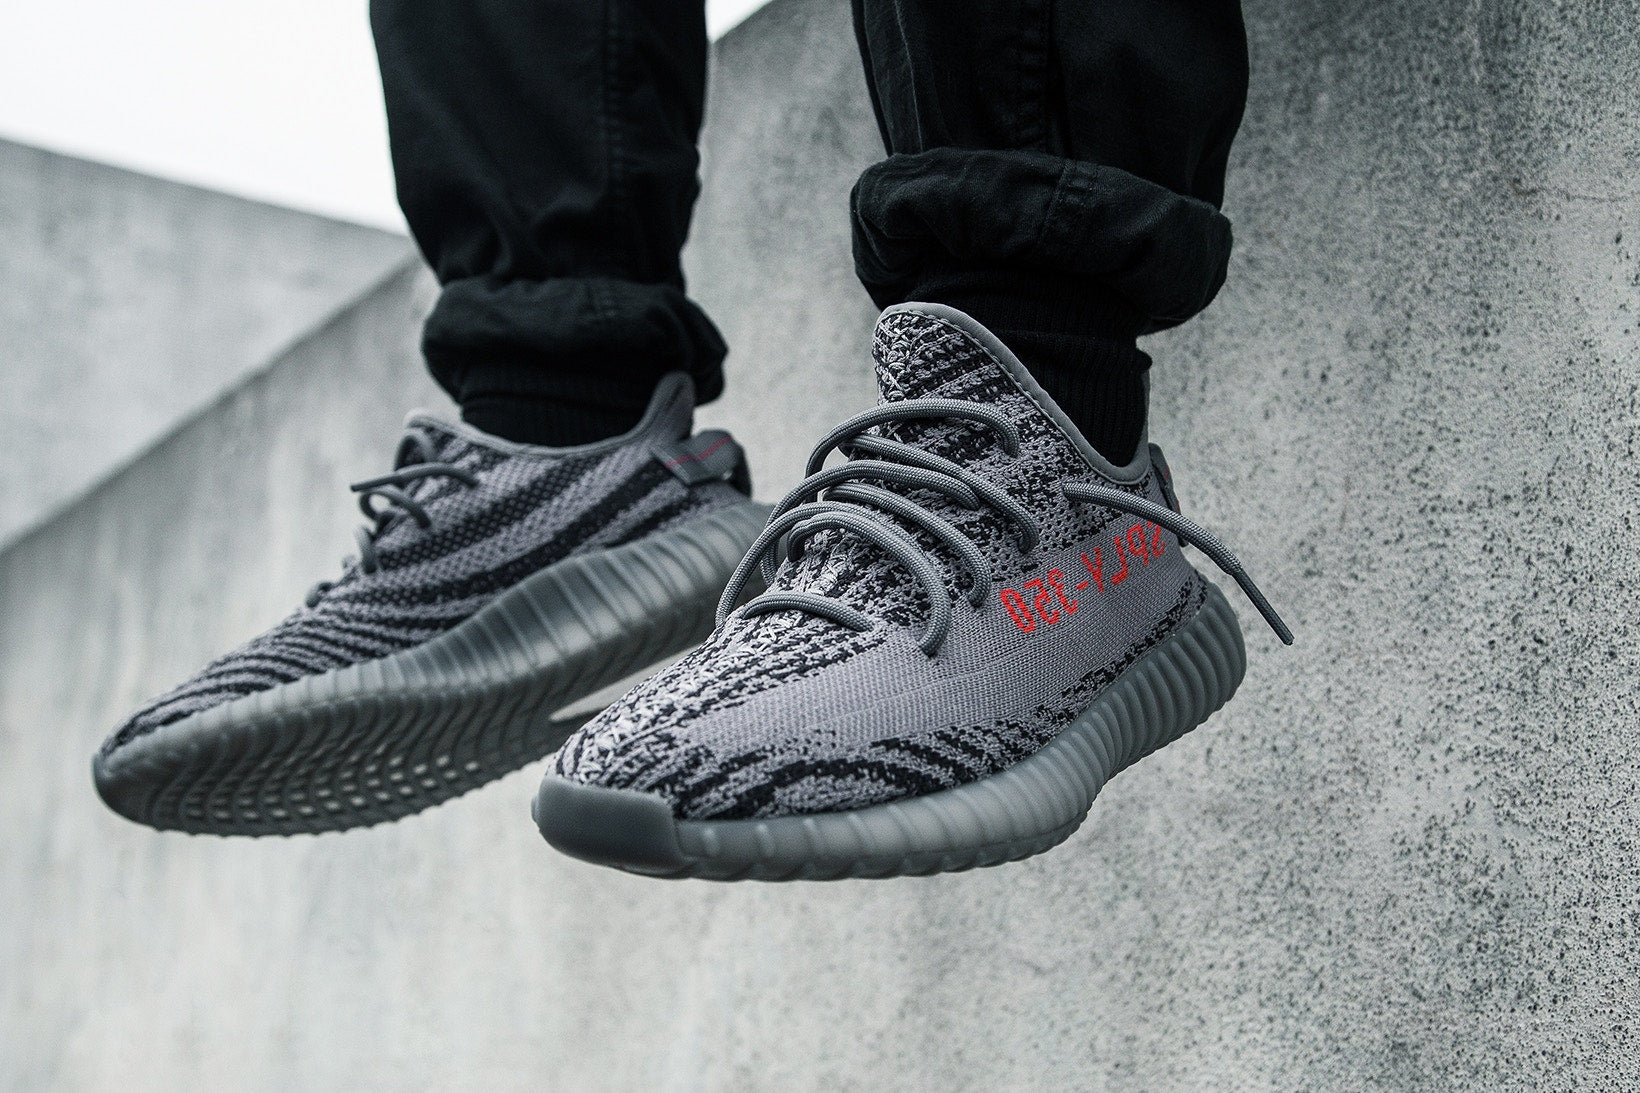 best website 81e71 0c1d9 Beluga 2.0 - adidas Originals Yeezy Boost 350 V2